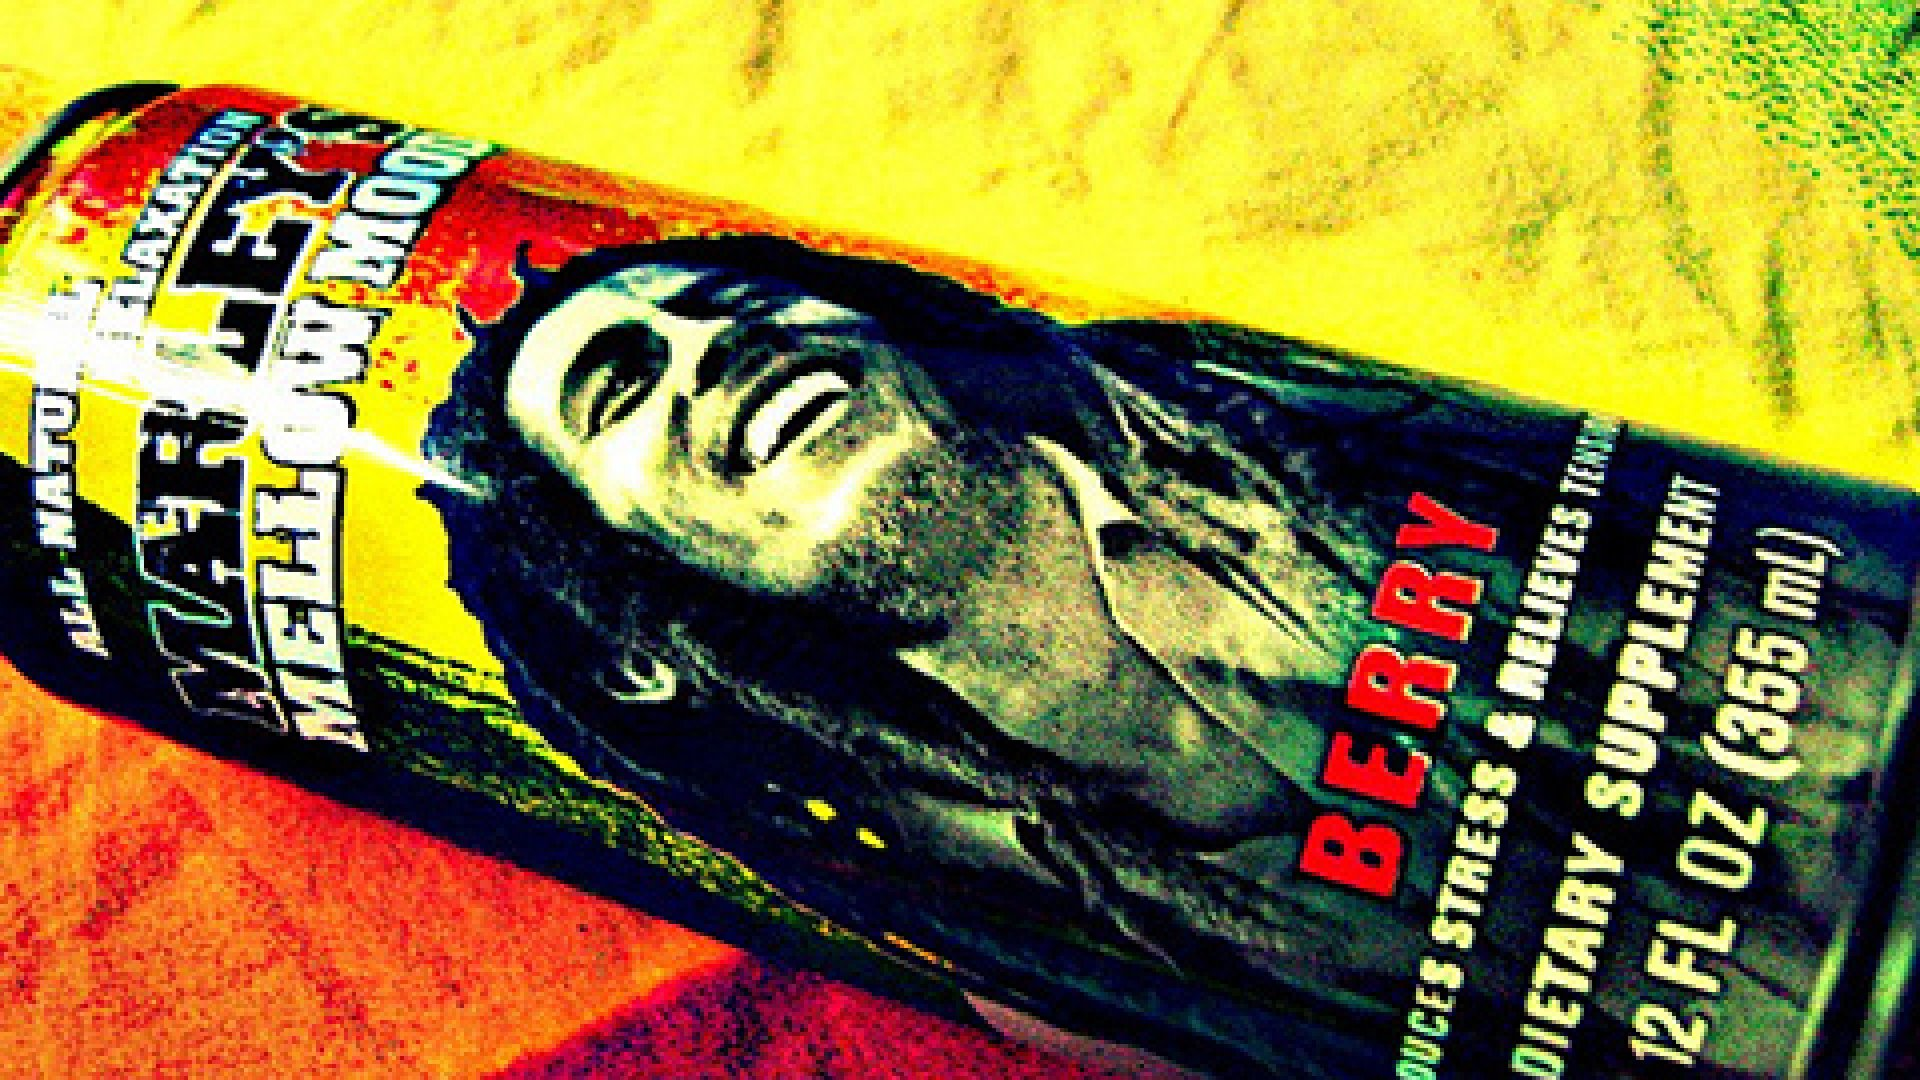 Marley's Mellow Mood is a line of 100% natural relaxation beverages created in partnership with the Marley family.